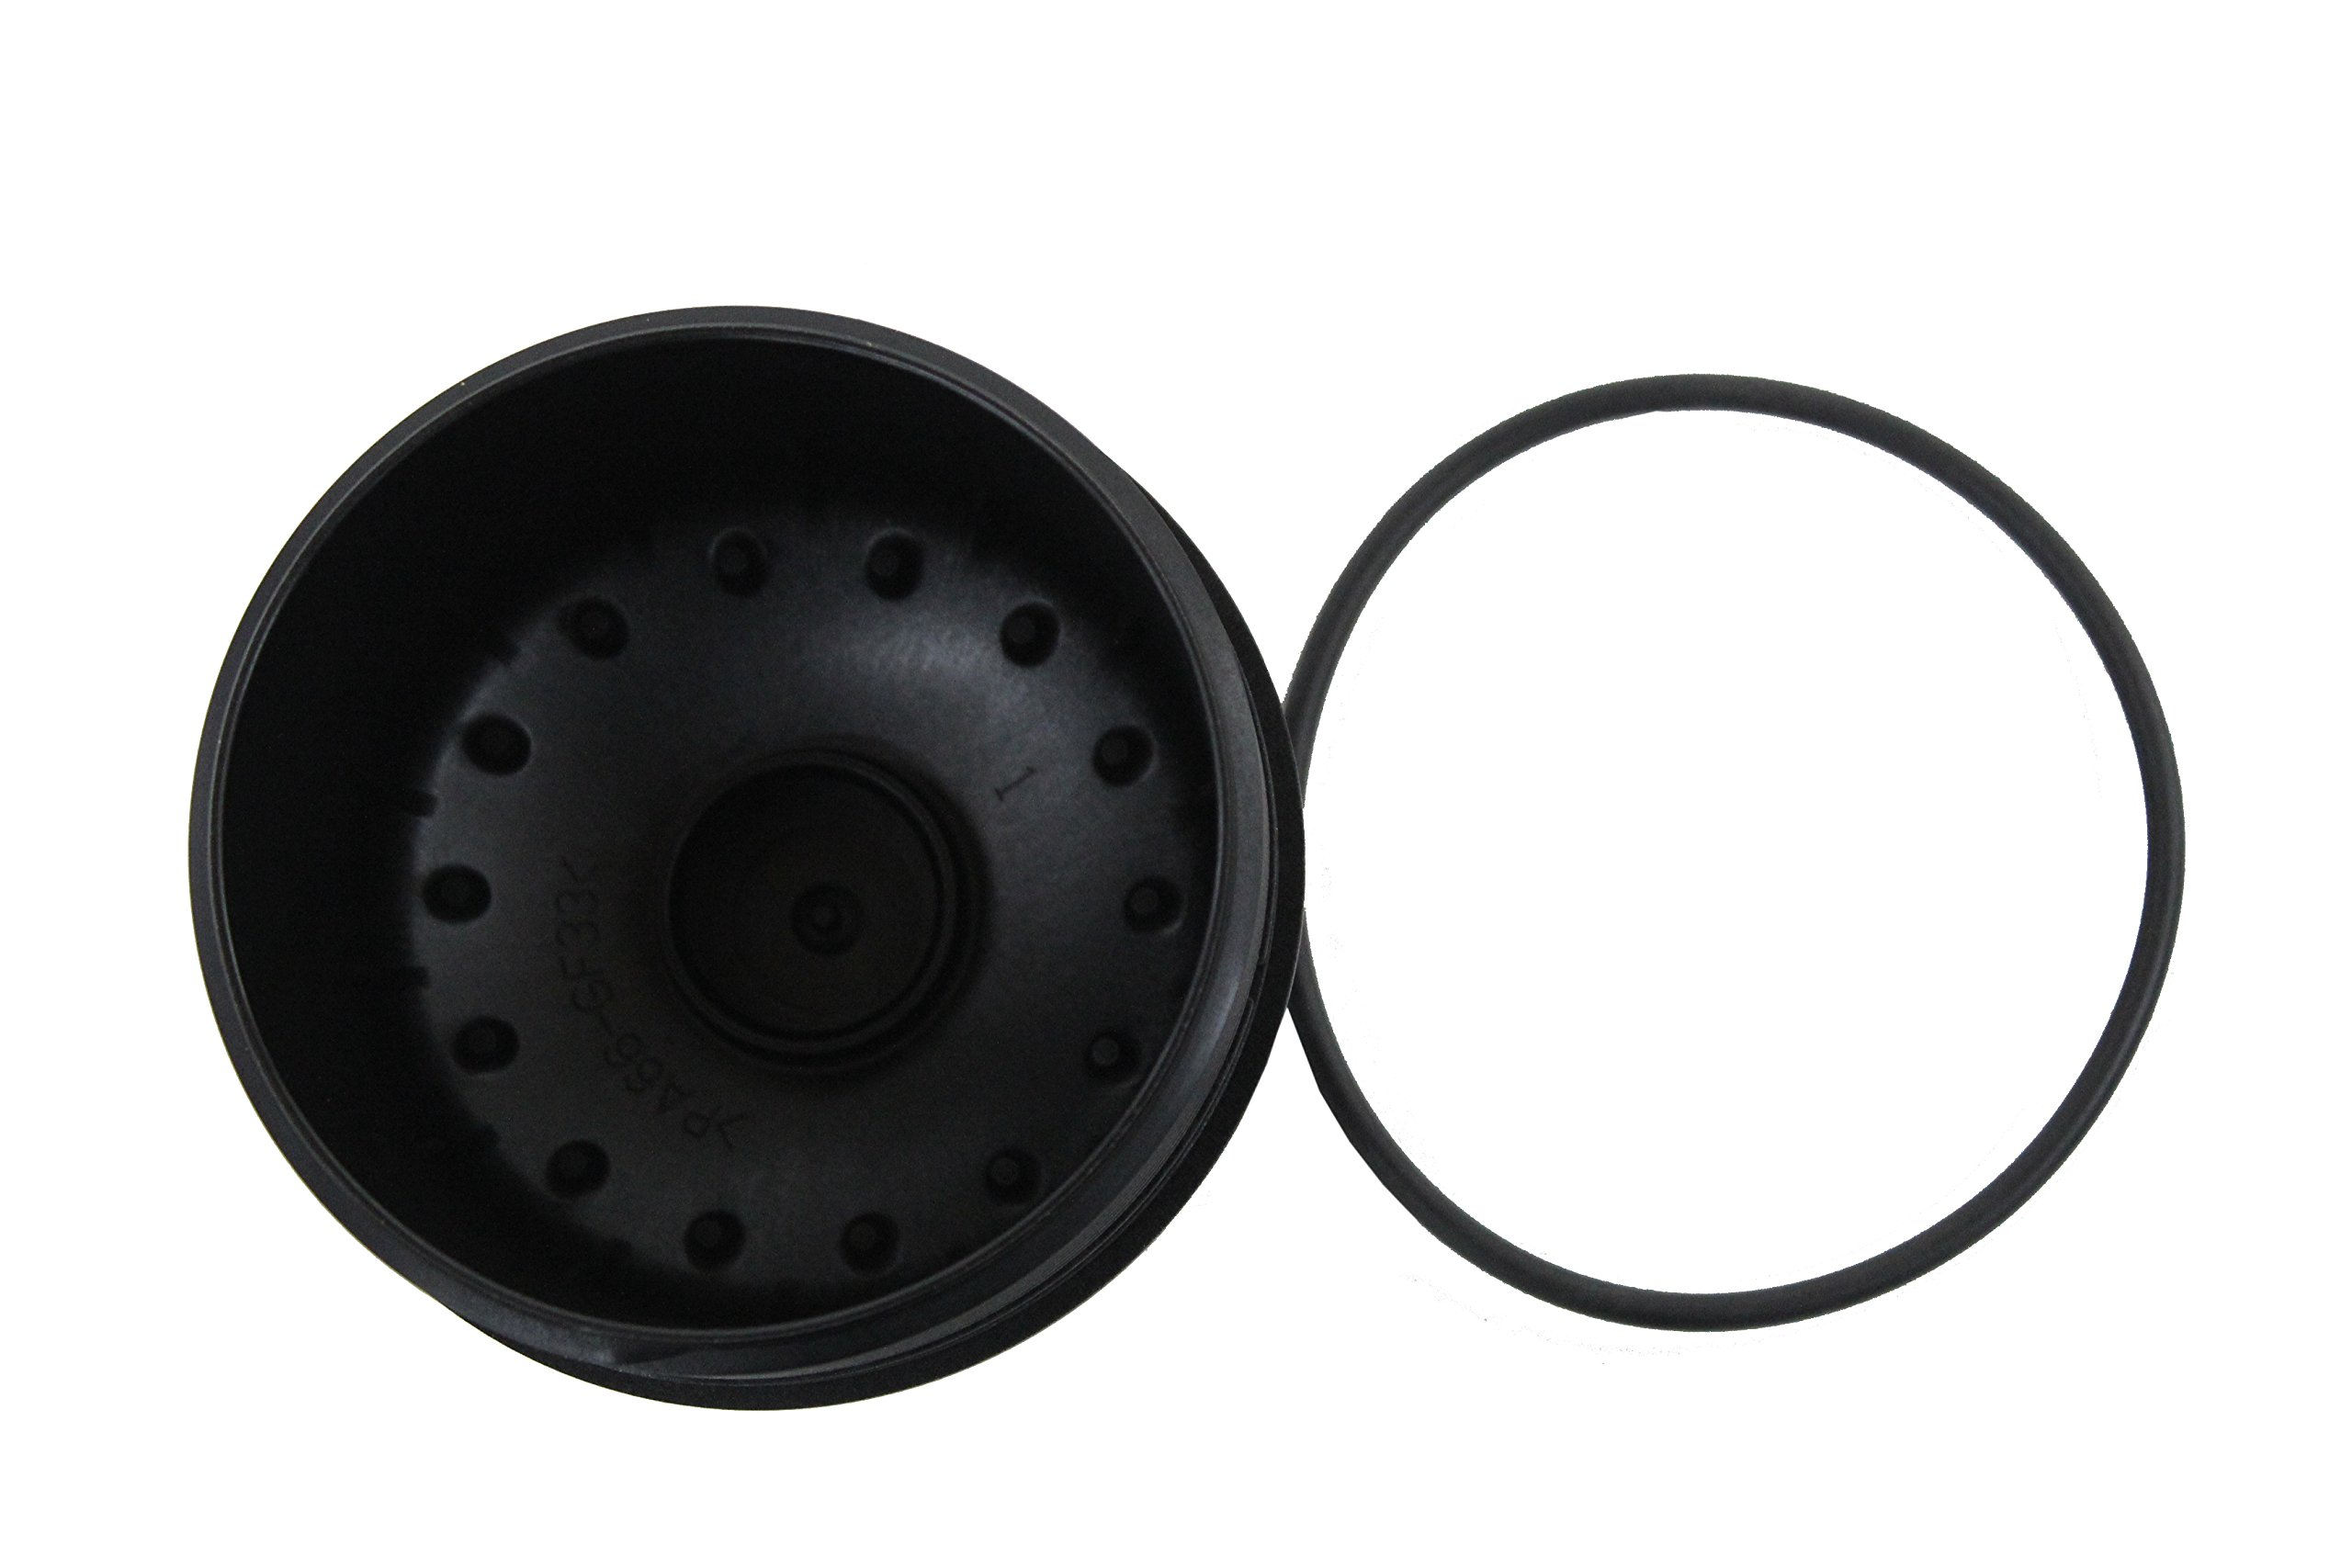 Genuine Ford 3C3Z-6766-CA Oil Filler Cap Assembly by Ford